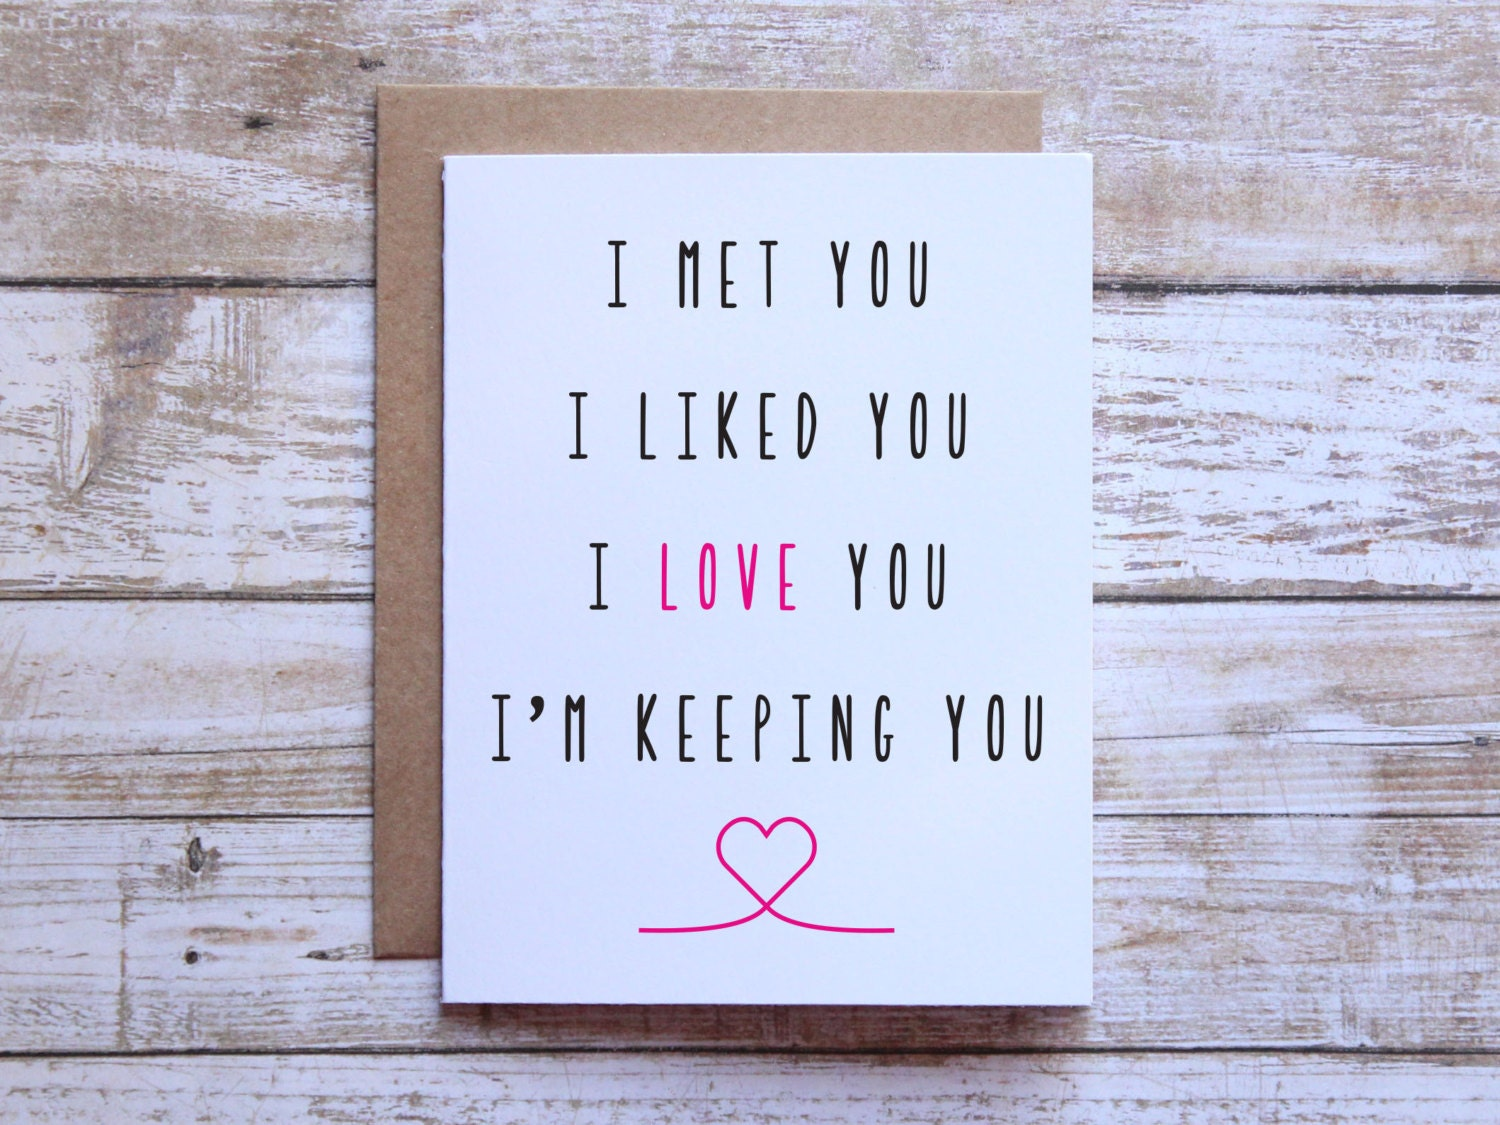 Funny pregnant birthday cards birthday personalised christmas greetings i love you card i met you i liked you i love you im il fullxfull i love you card i met you i liked you i funny pregnant birthday cards birthday bookmarktalkfo Choice Image